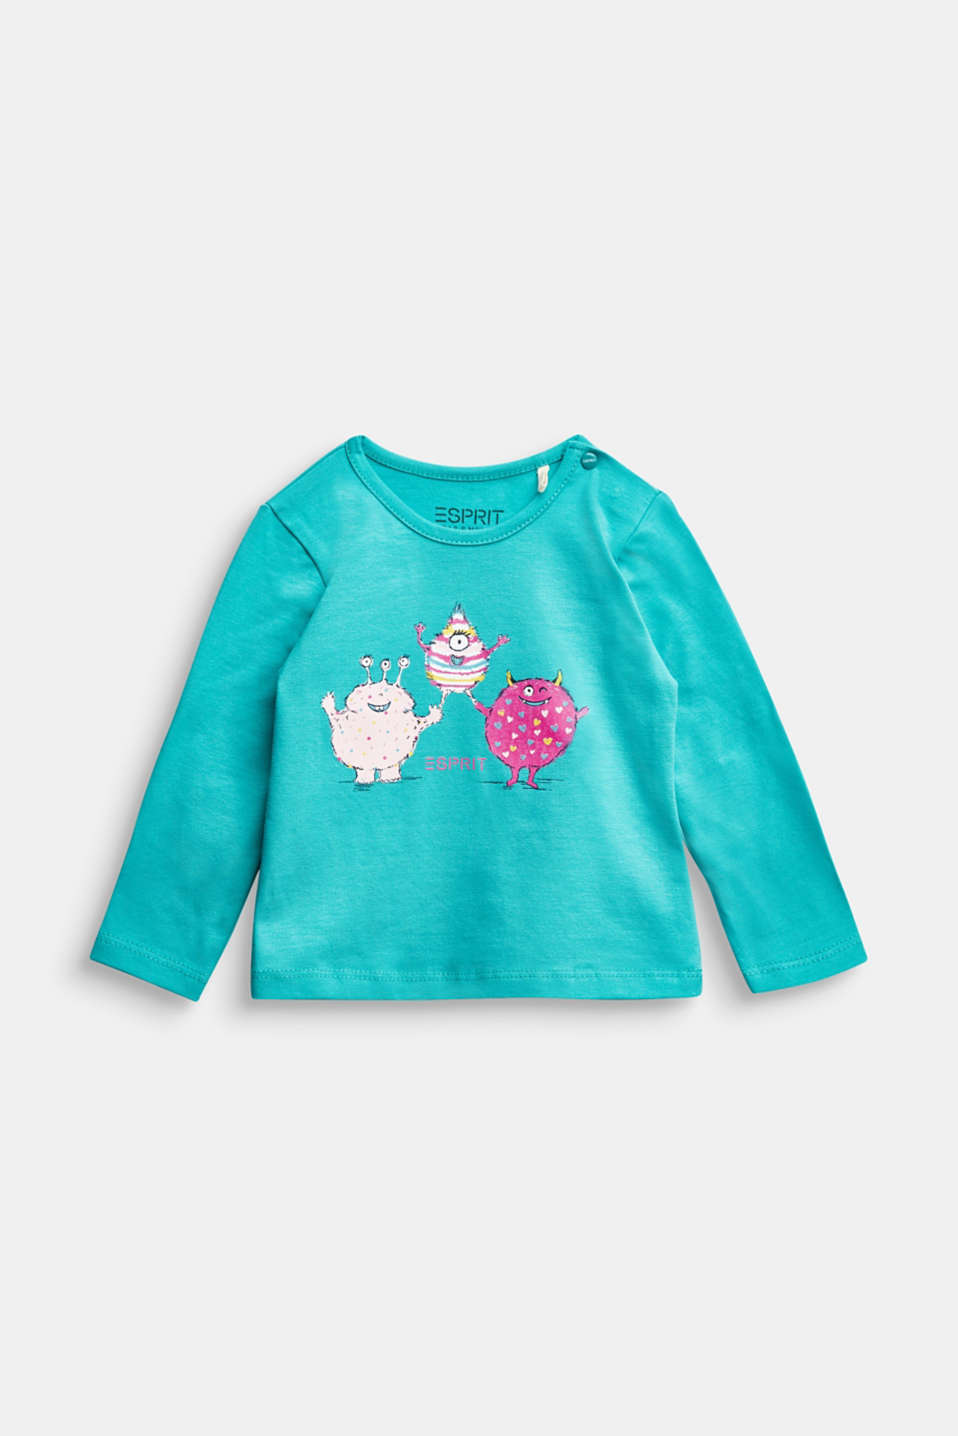 Esprit - Long sleeve T-shirt with monster print, organic cotton